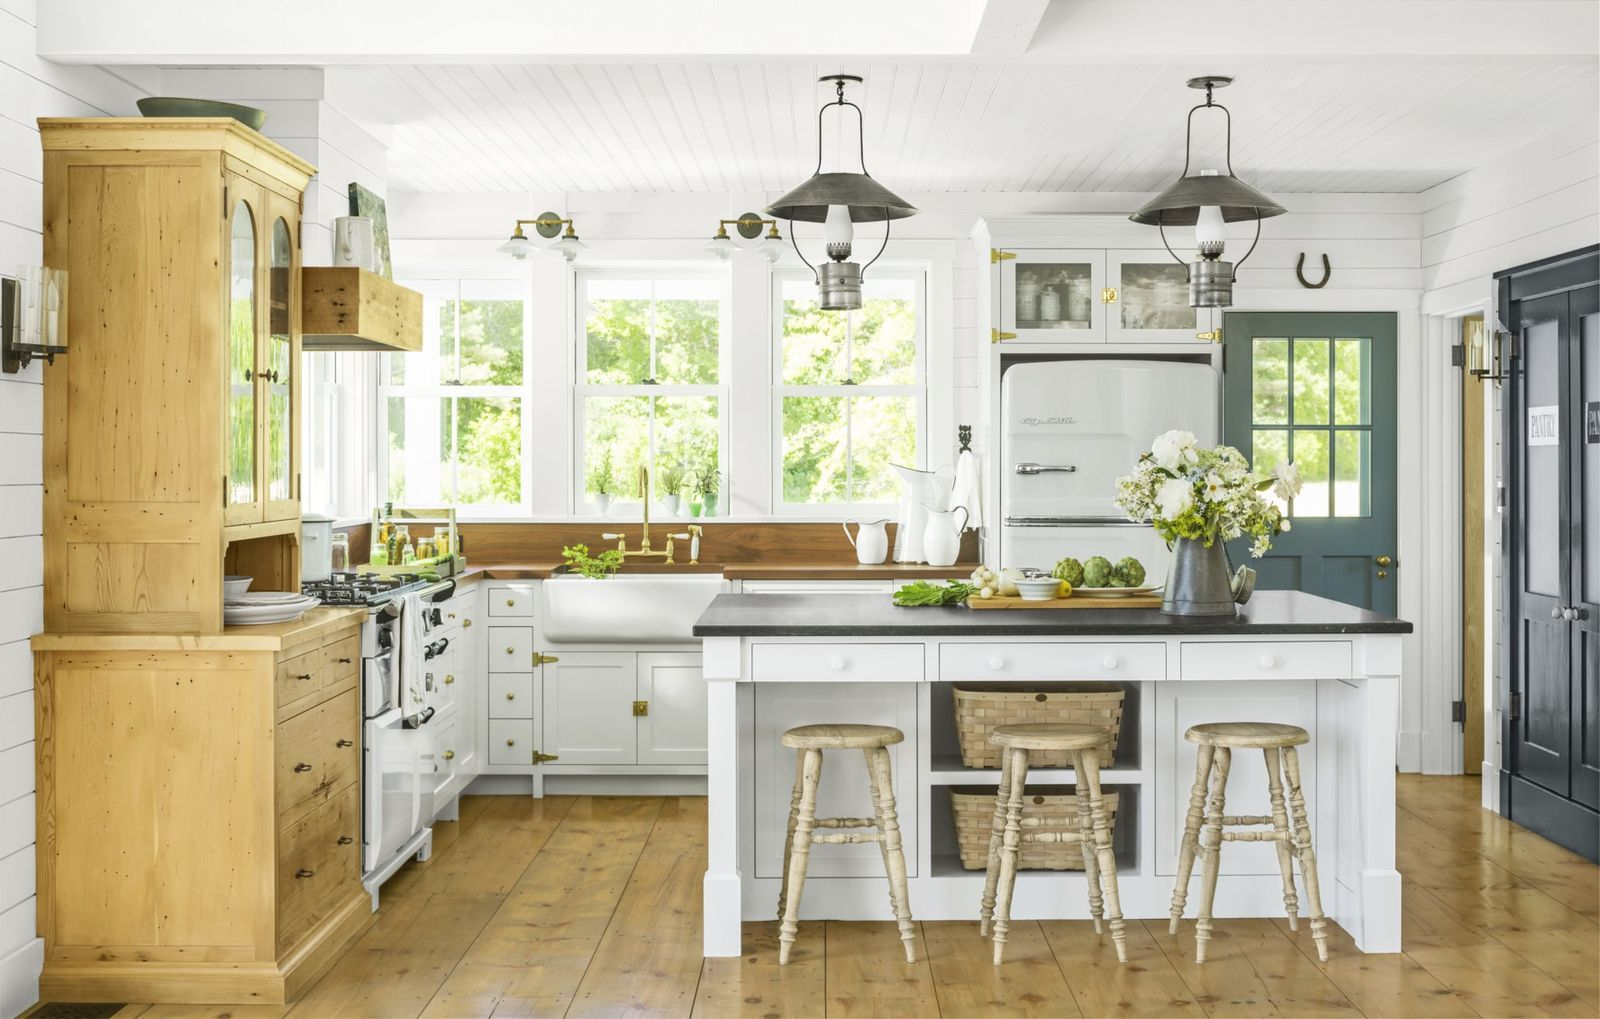 Our Favorite Farmhouse Decor Ideas For Your Dream Country Home In 2020 Country Kitchen Designs Rustic Farmhouse Kitchen Farmhouse Kitchen Decor